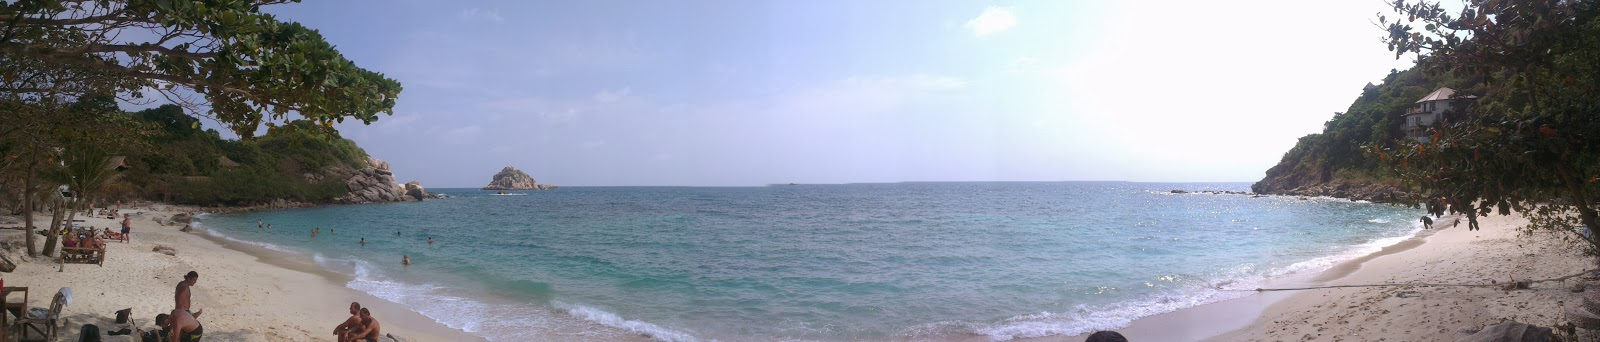 Panorama of beautiful beach